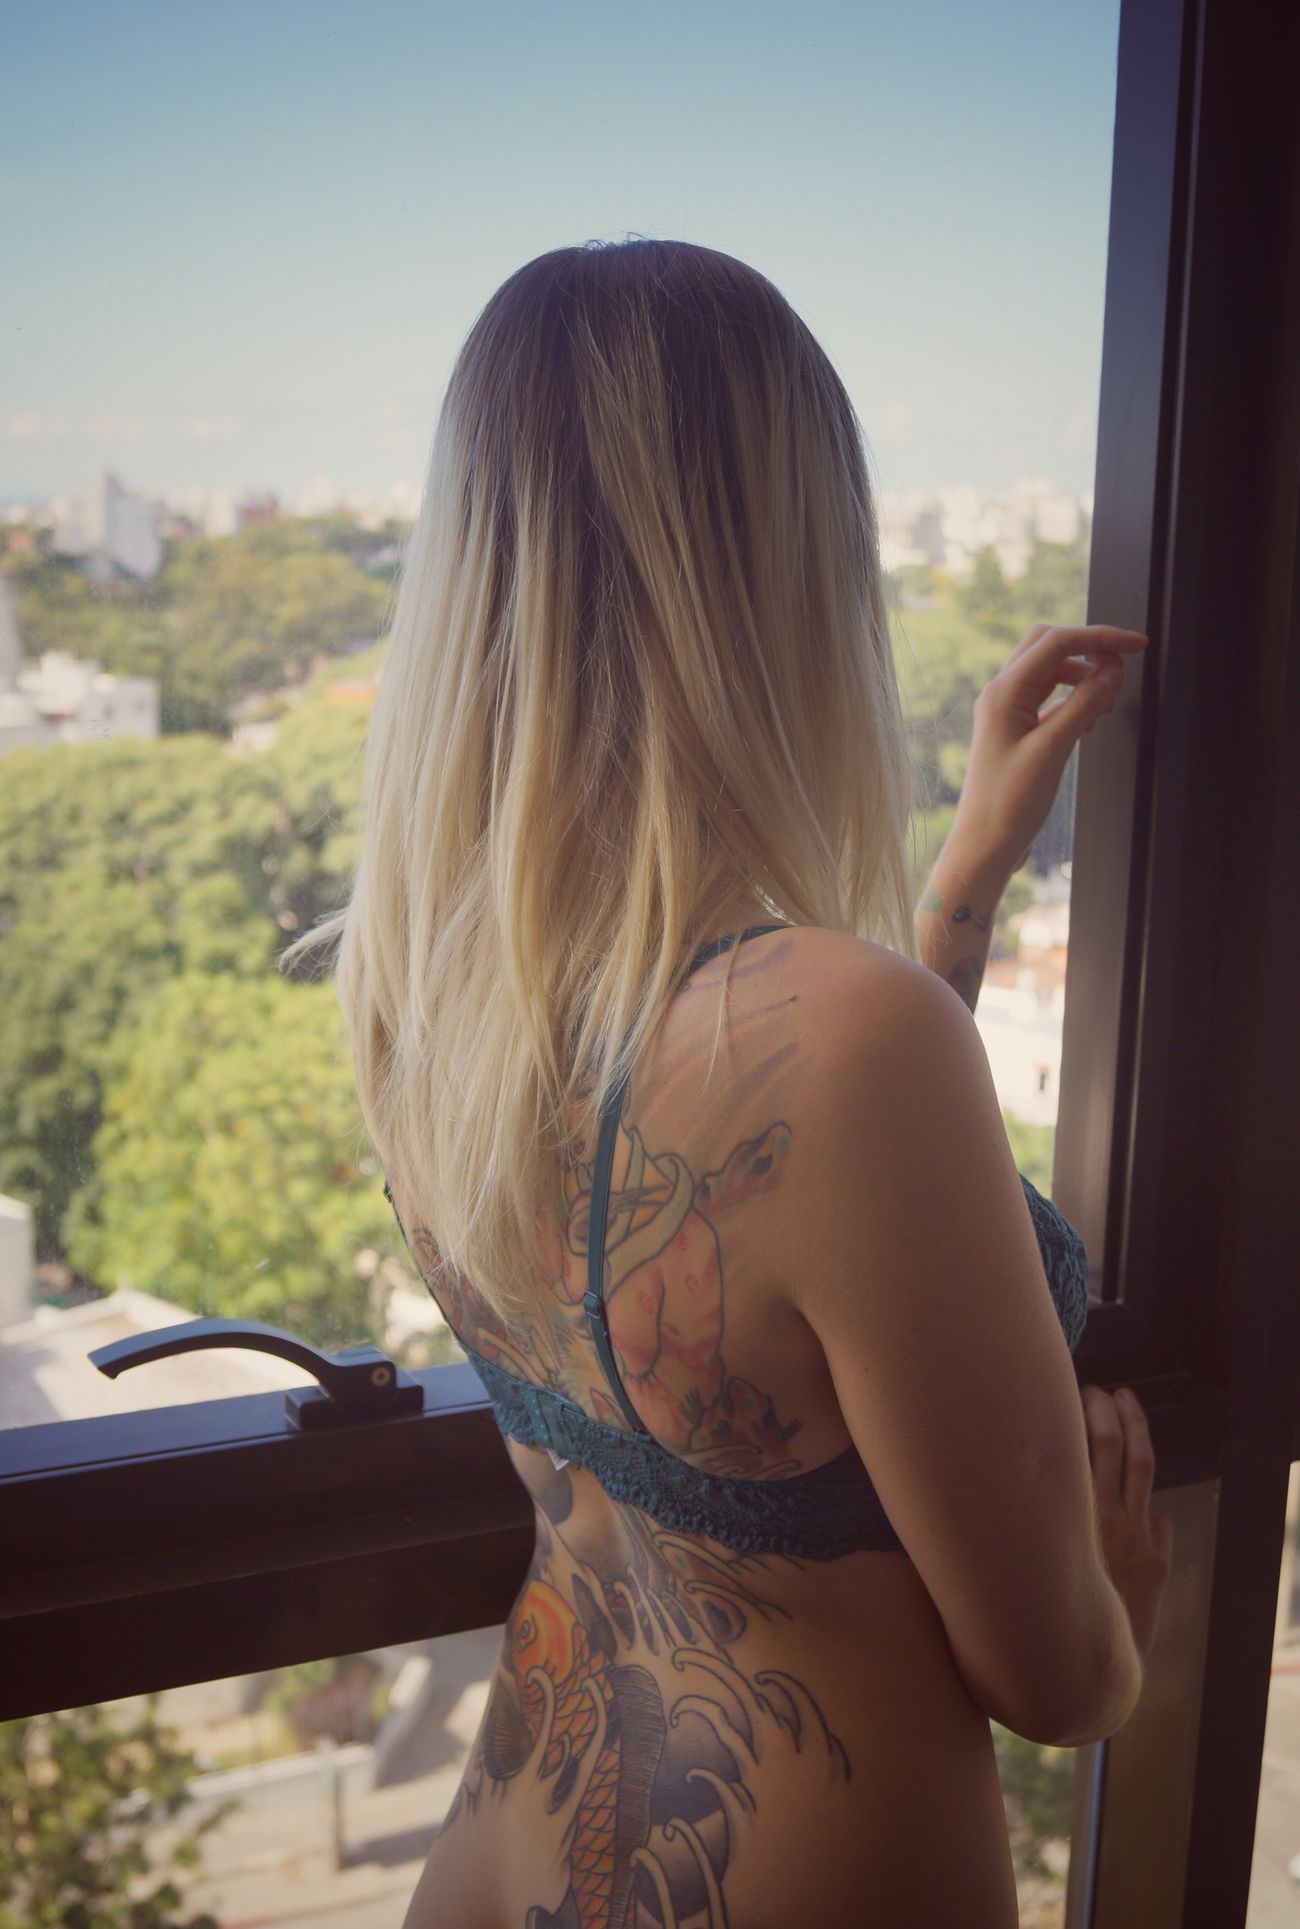 One Woman Only One Person Rear View Only Women One Young Woman Only Long Hair Human Body Part Adult Adults Only Young Adult Women Day People Leisure Activity Young Women Beautiful Woman Human Arm Cityscape Sensual 💕 INKEDGIRL SexyGirl.♥ Sexywoman Beautiful People Indoors  Close-up